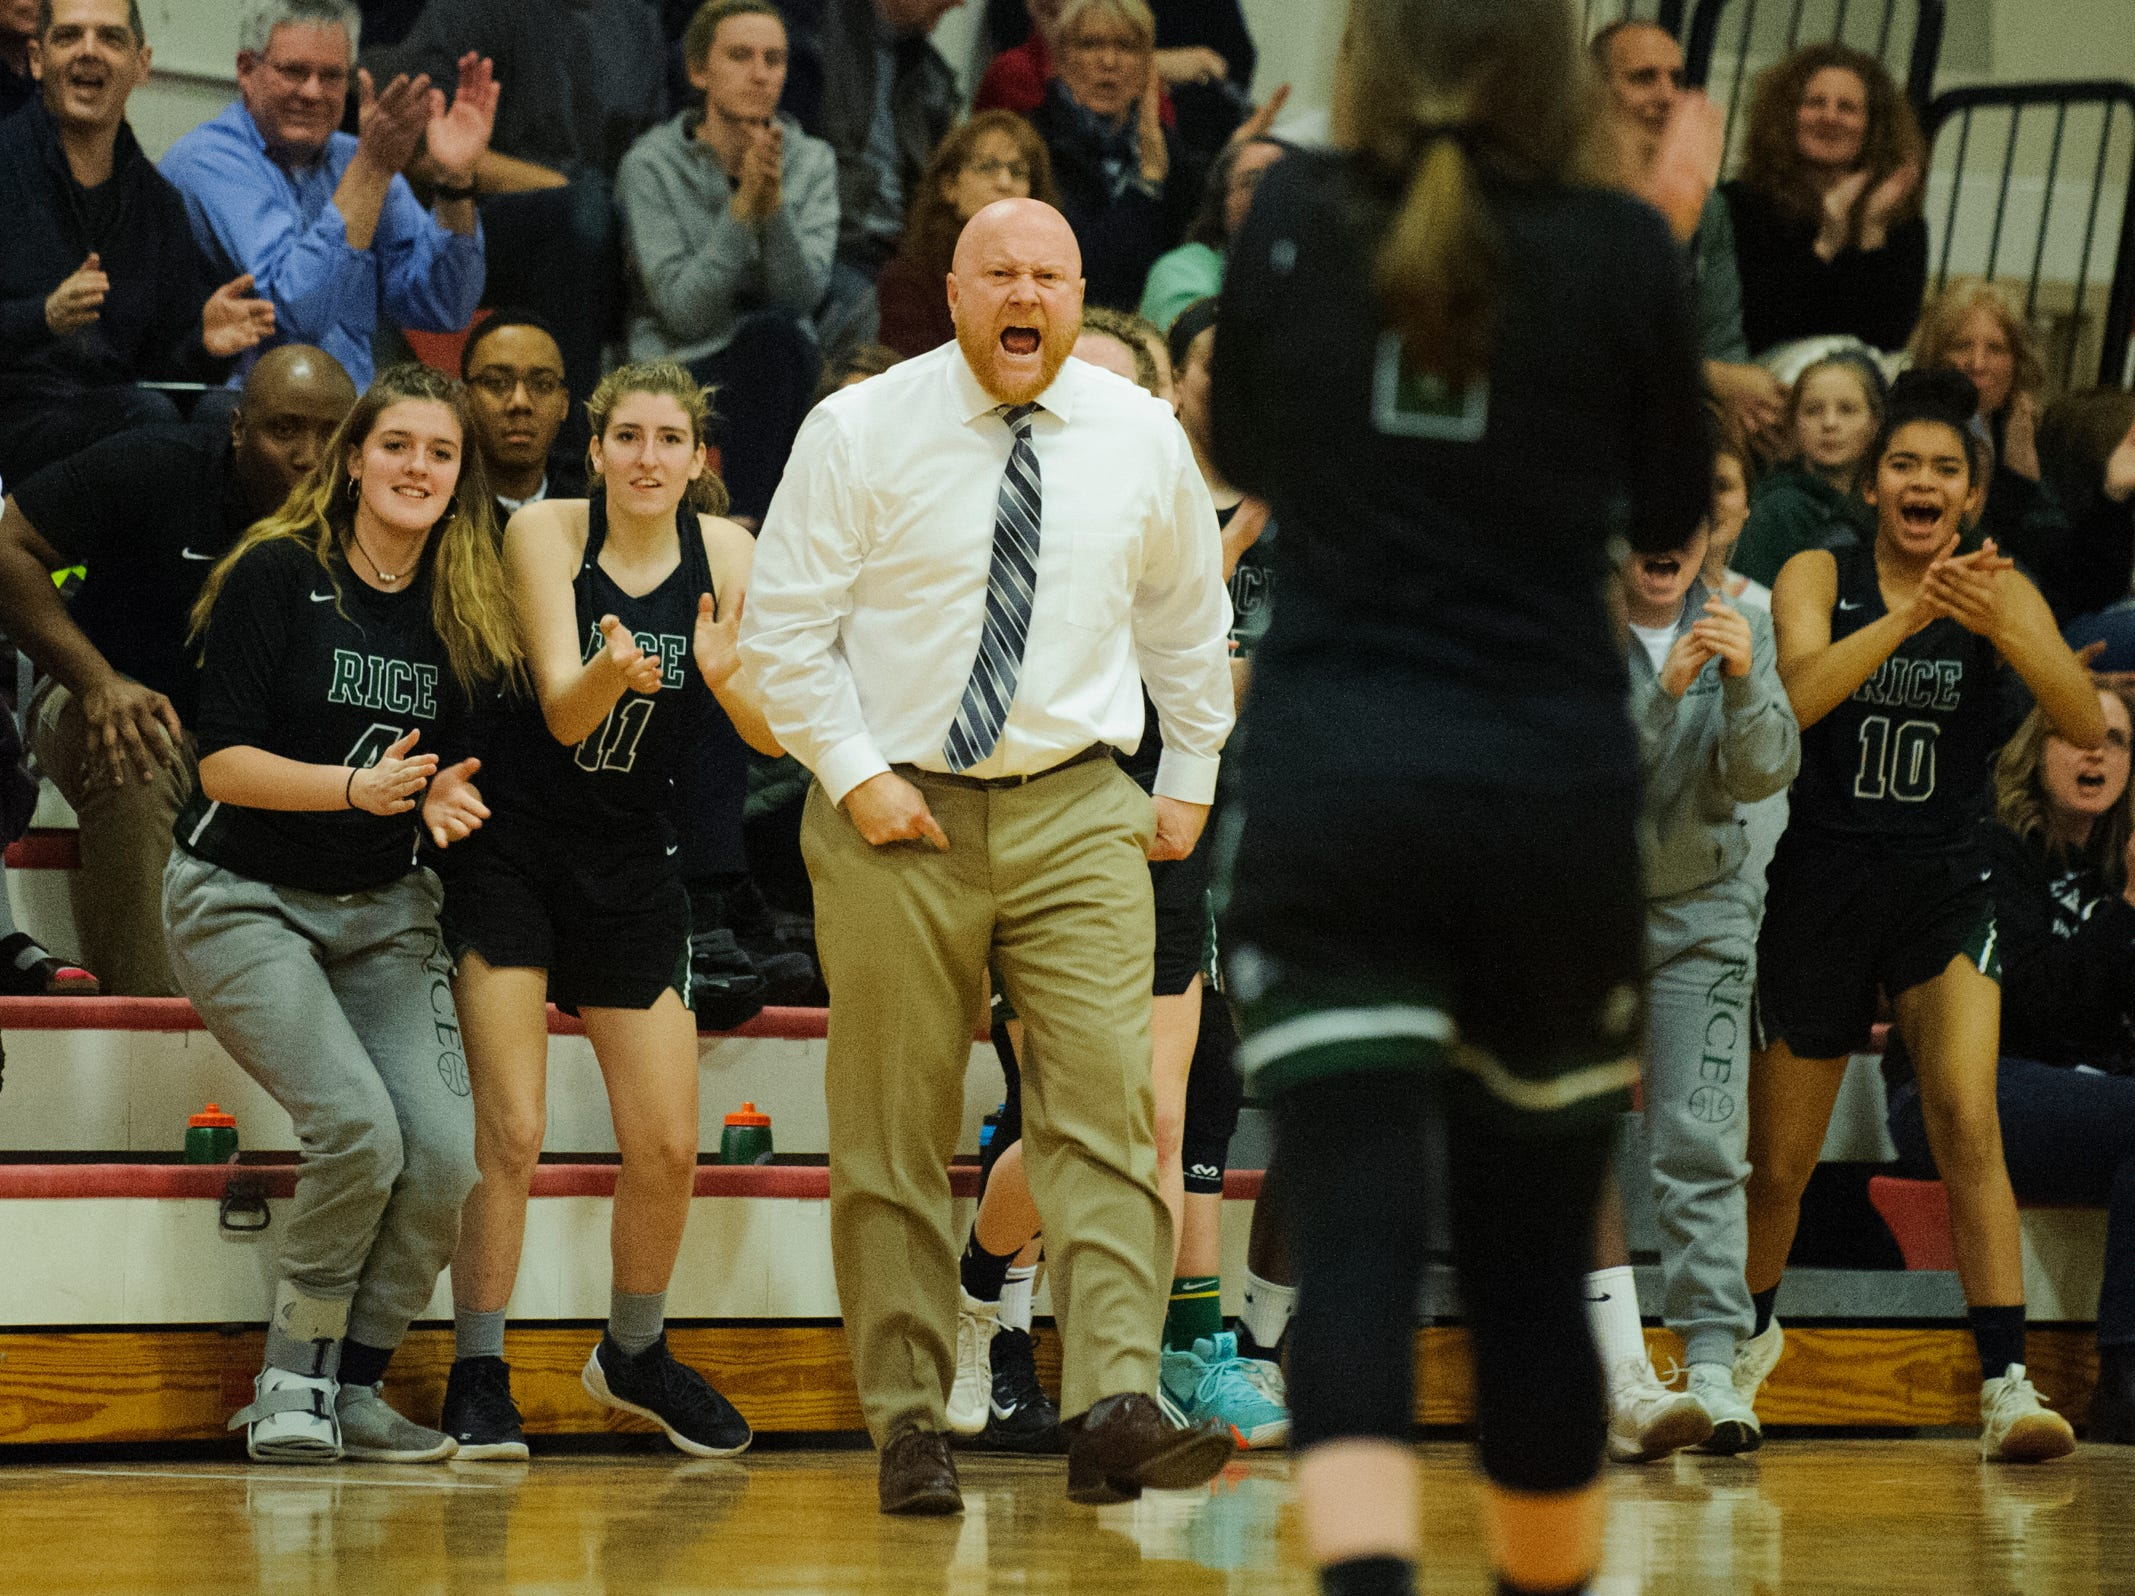 Rice head coach Aurie Thibault cheers for a play during high school girls basketball game between the Rice Green Knights and the Champlain Valley Union Redhawks at CVU High School on Friday night January 11, 2019 in Hinesburg.